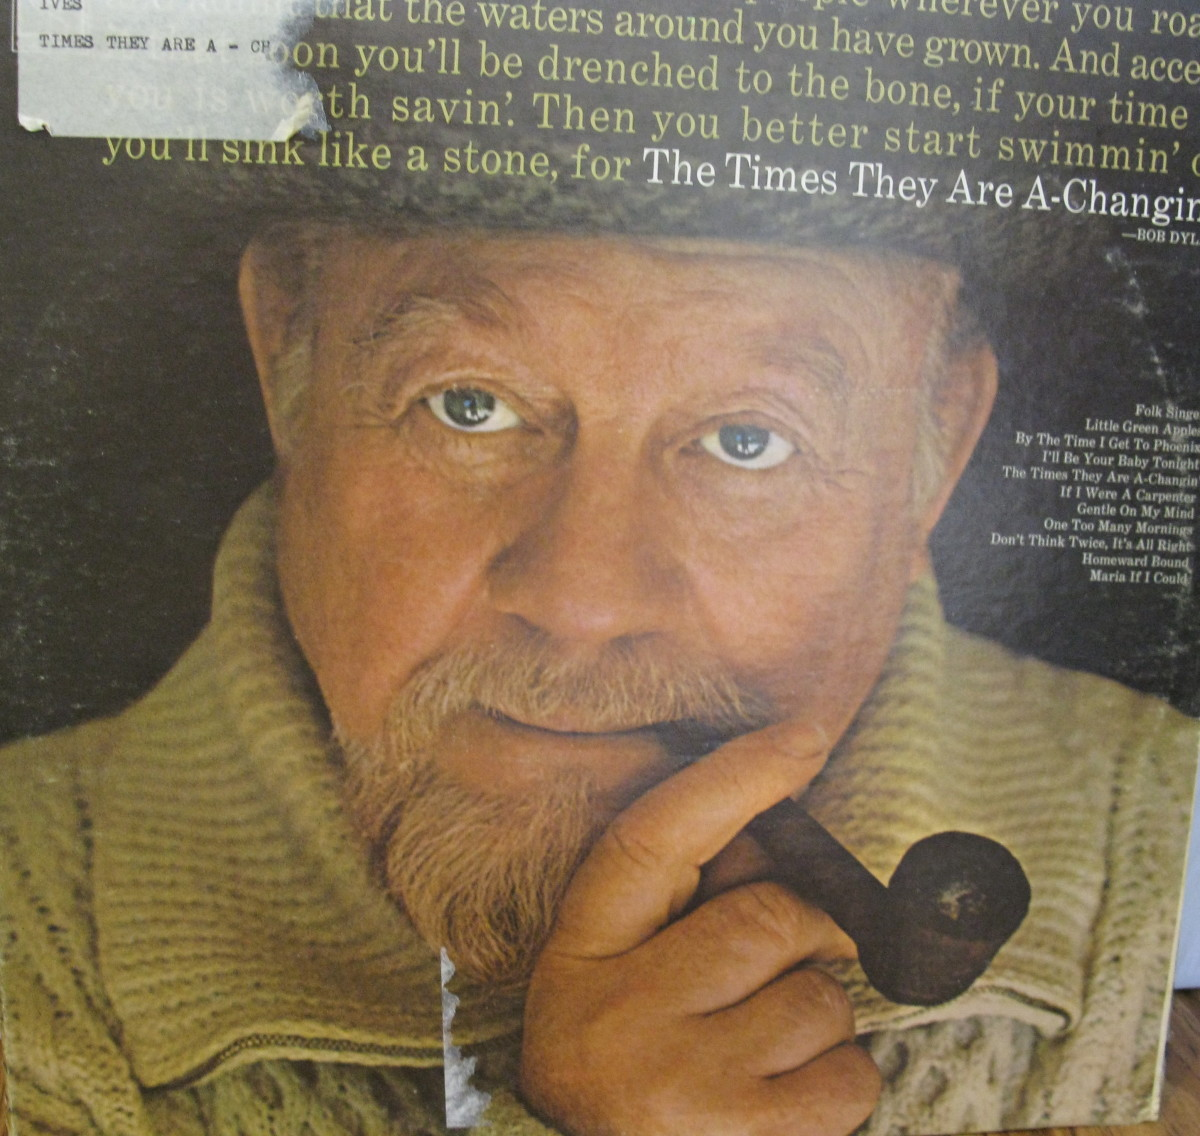 Burl Ives,the Wayfaring Stranger, Rift With Folk Singer Pete Seeger over communist blacklisting